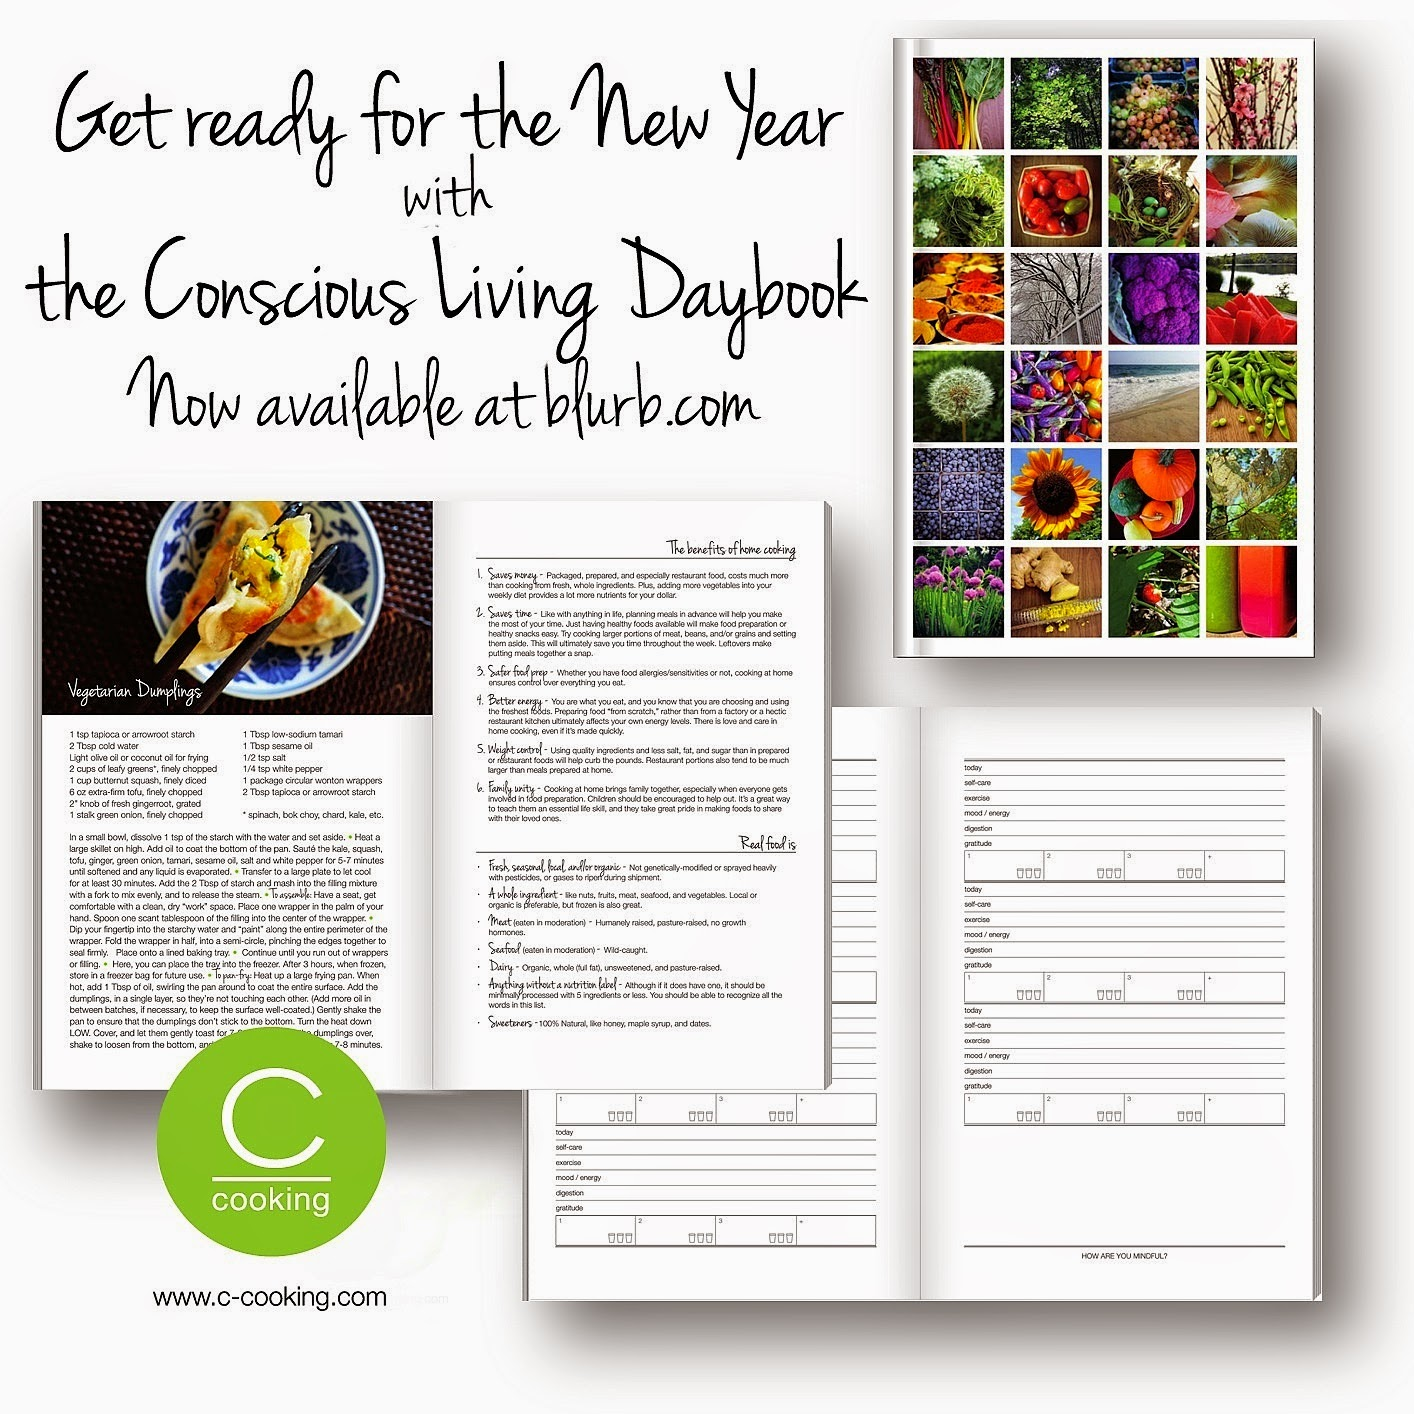 THE CONSCIOUS LIVING DAYBOOK IS NOW AVAILABLE AT BLURB.COM